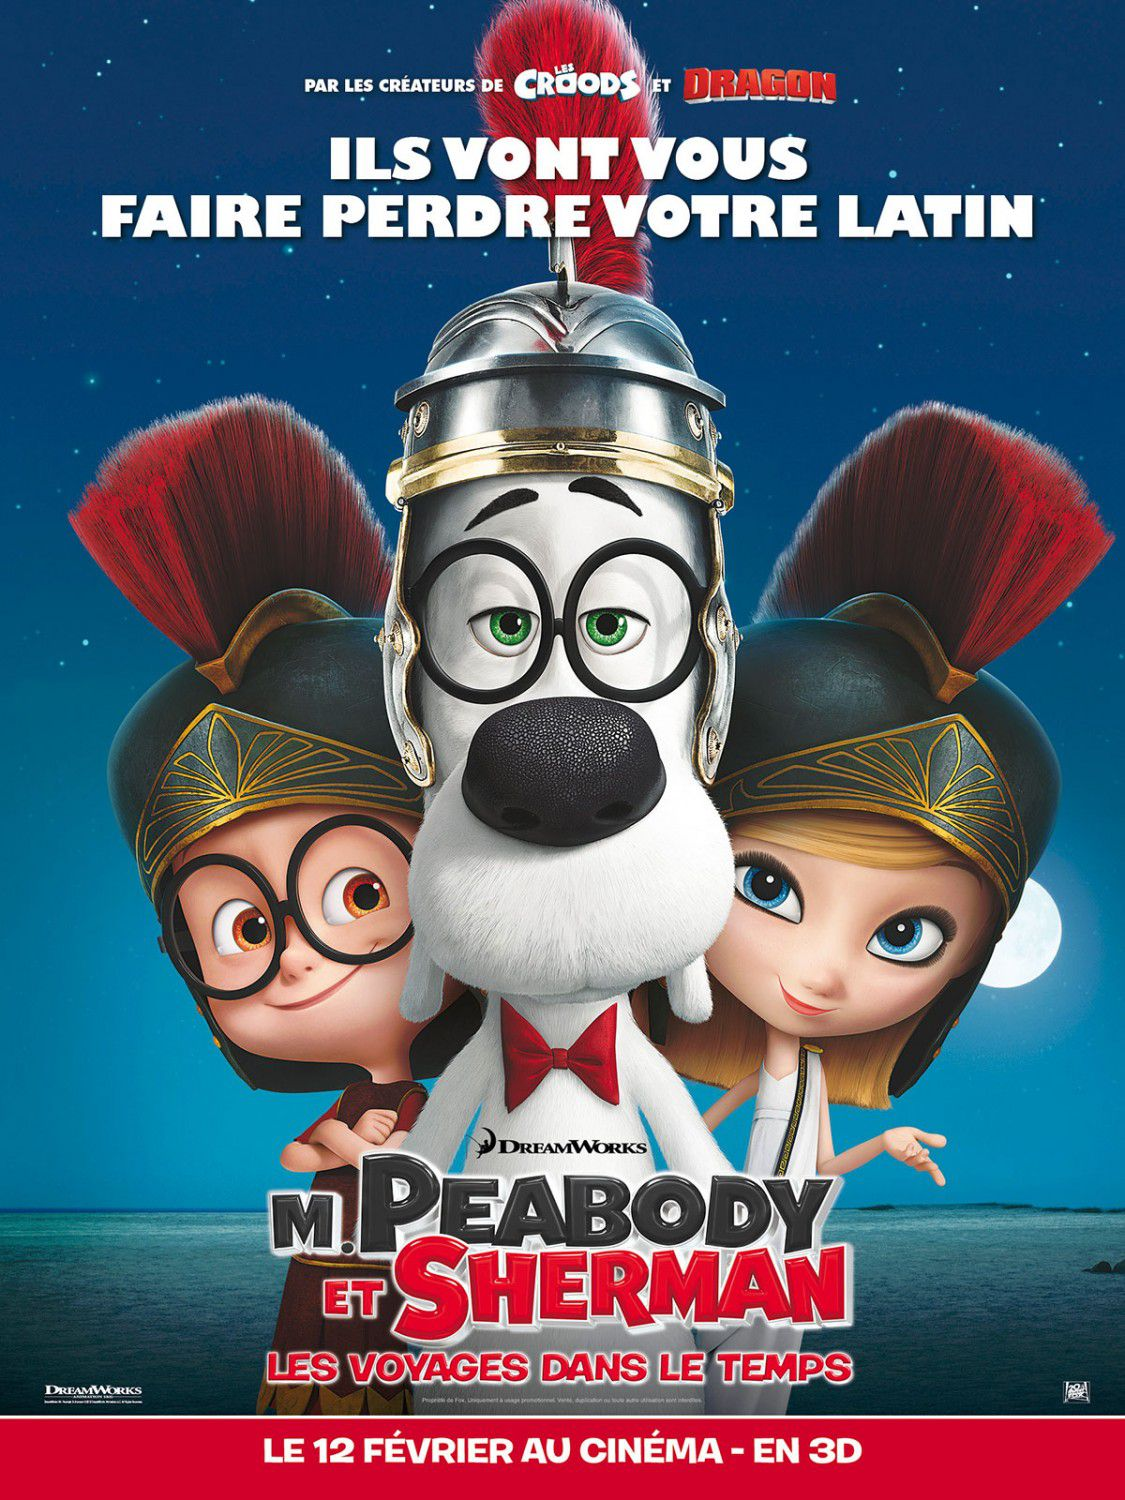 Mr Peabody and Sherman - animate film poster - Roman Empire - Impero Romano